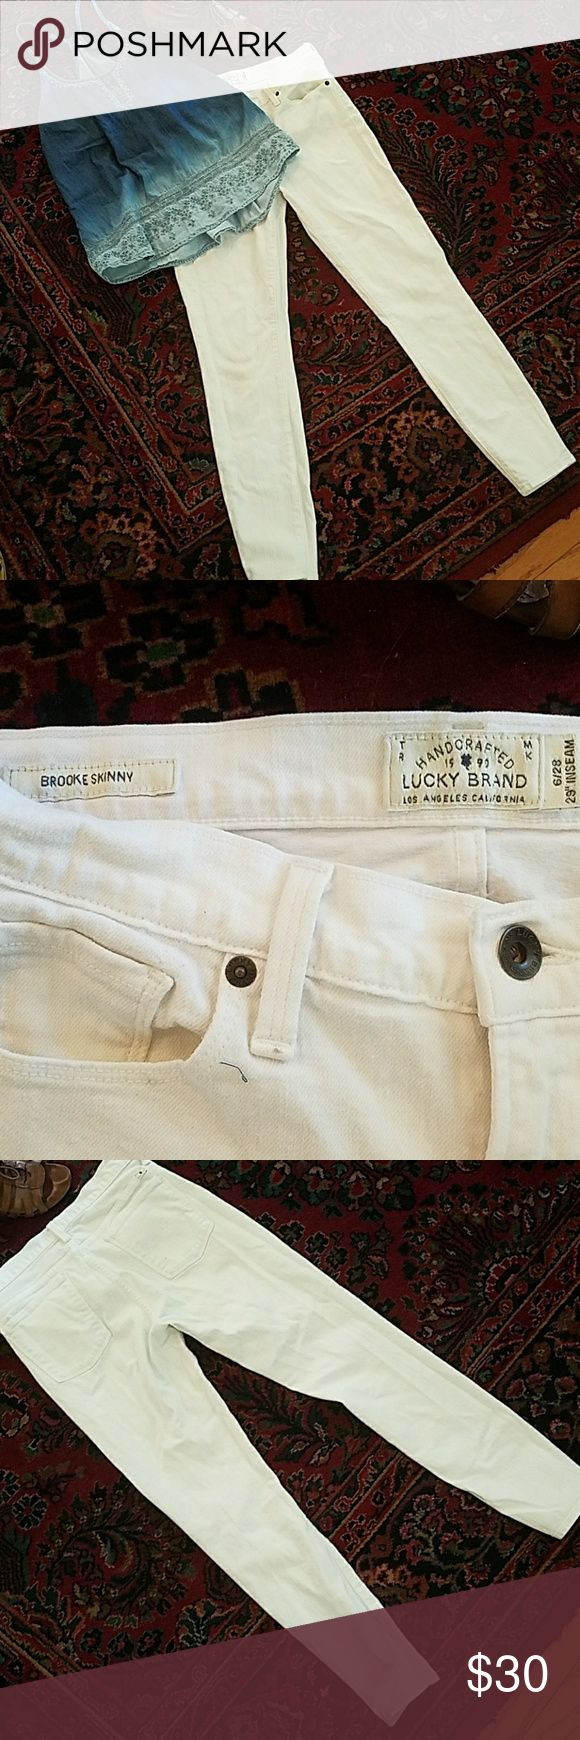 White Lucky Brand Jeans Brooke skinny size 6 28 Perfect for summer, flawless mid rise jeans by Lucky Brand. I worked at lucky for a while so these are from the actual Boutique not the outlet and are very high quality. This style is the Brooke skinny. It is labeled a size 6 28 with a 29 inch inseam. They look great cuffed or let down and are very versatile. Lucky Brand Jeans Skinny